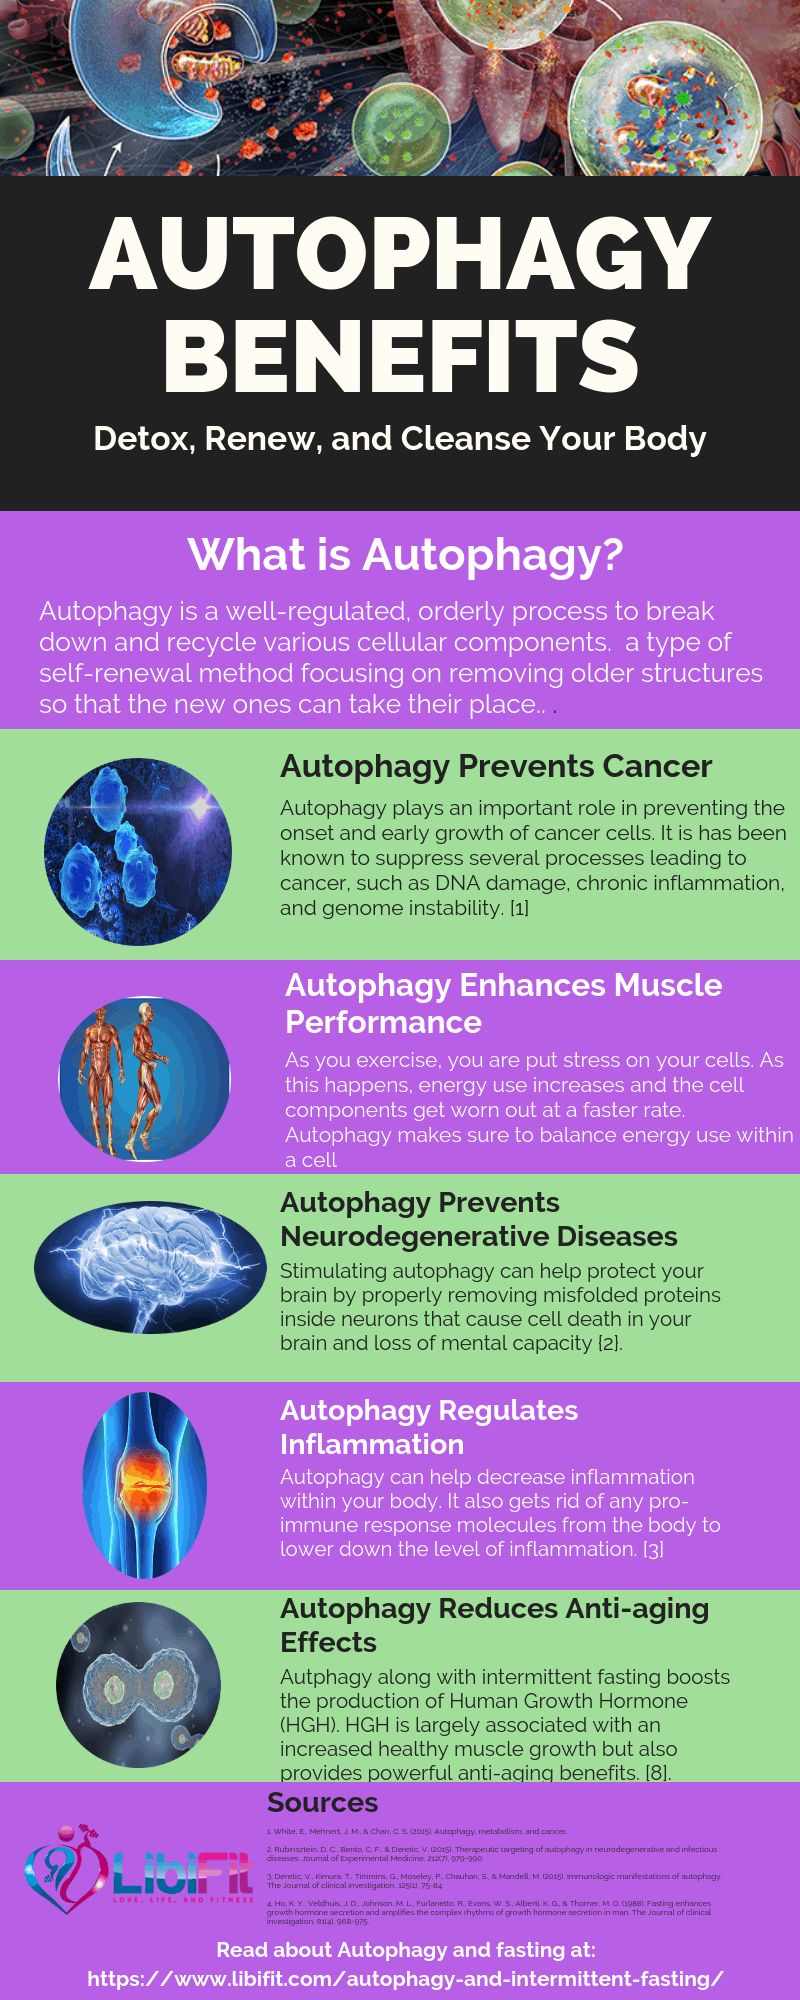 Detox and Renew Your Body with Autophagy and Intermittent